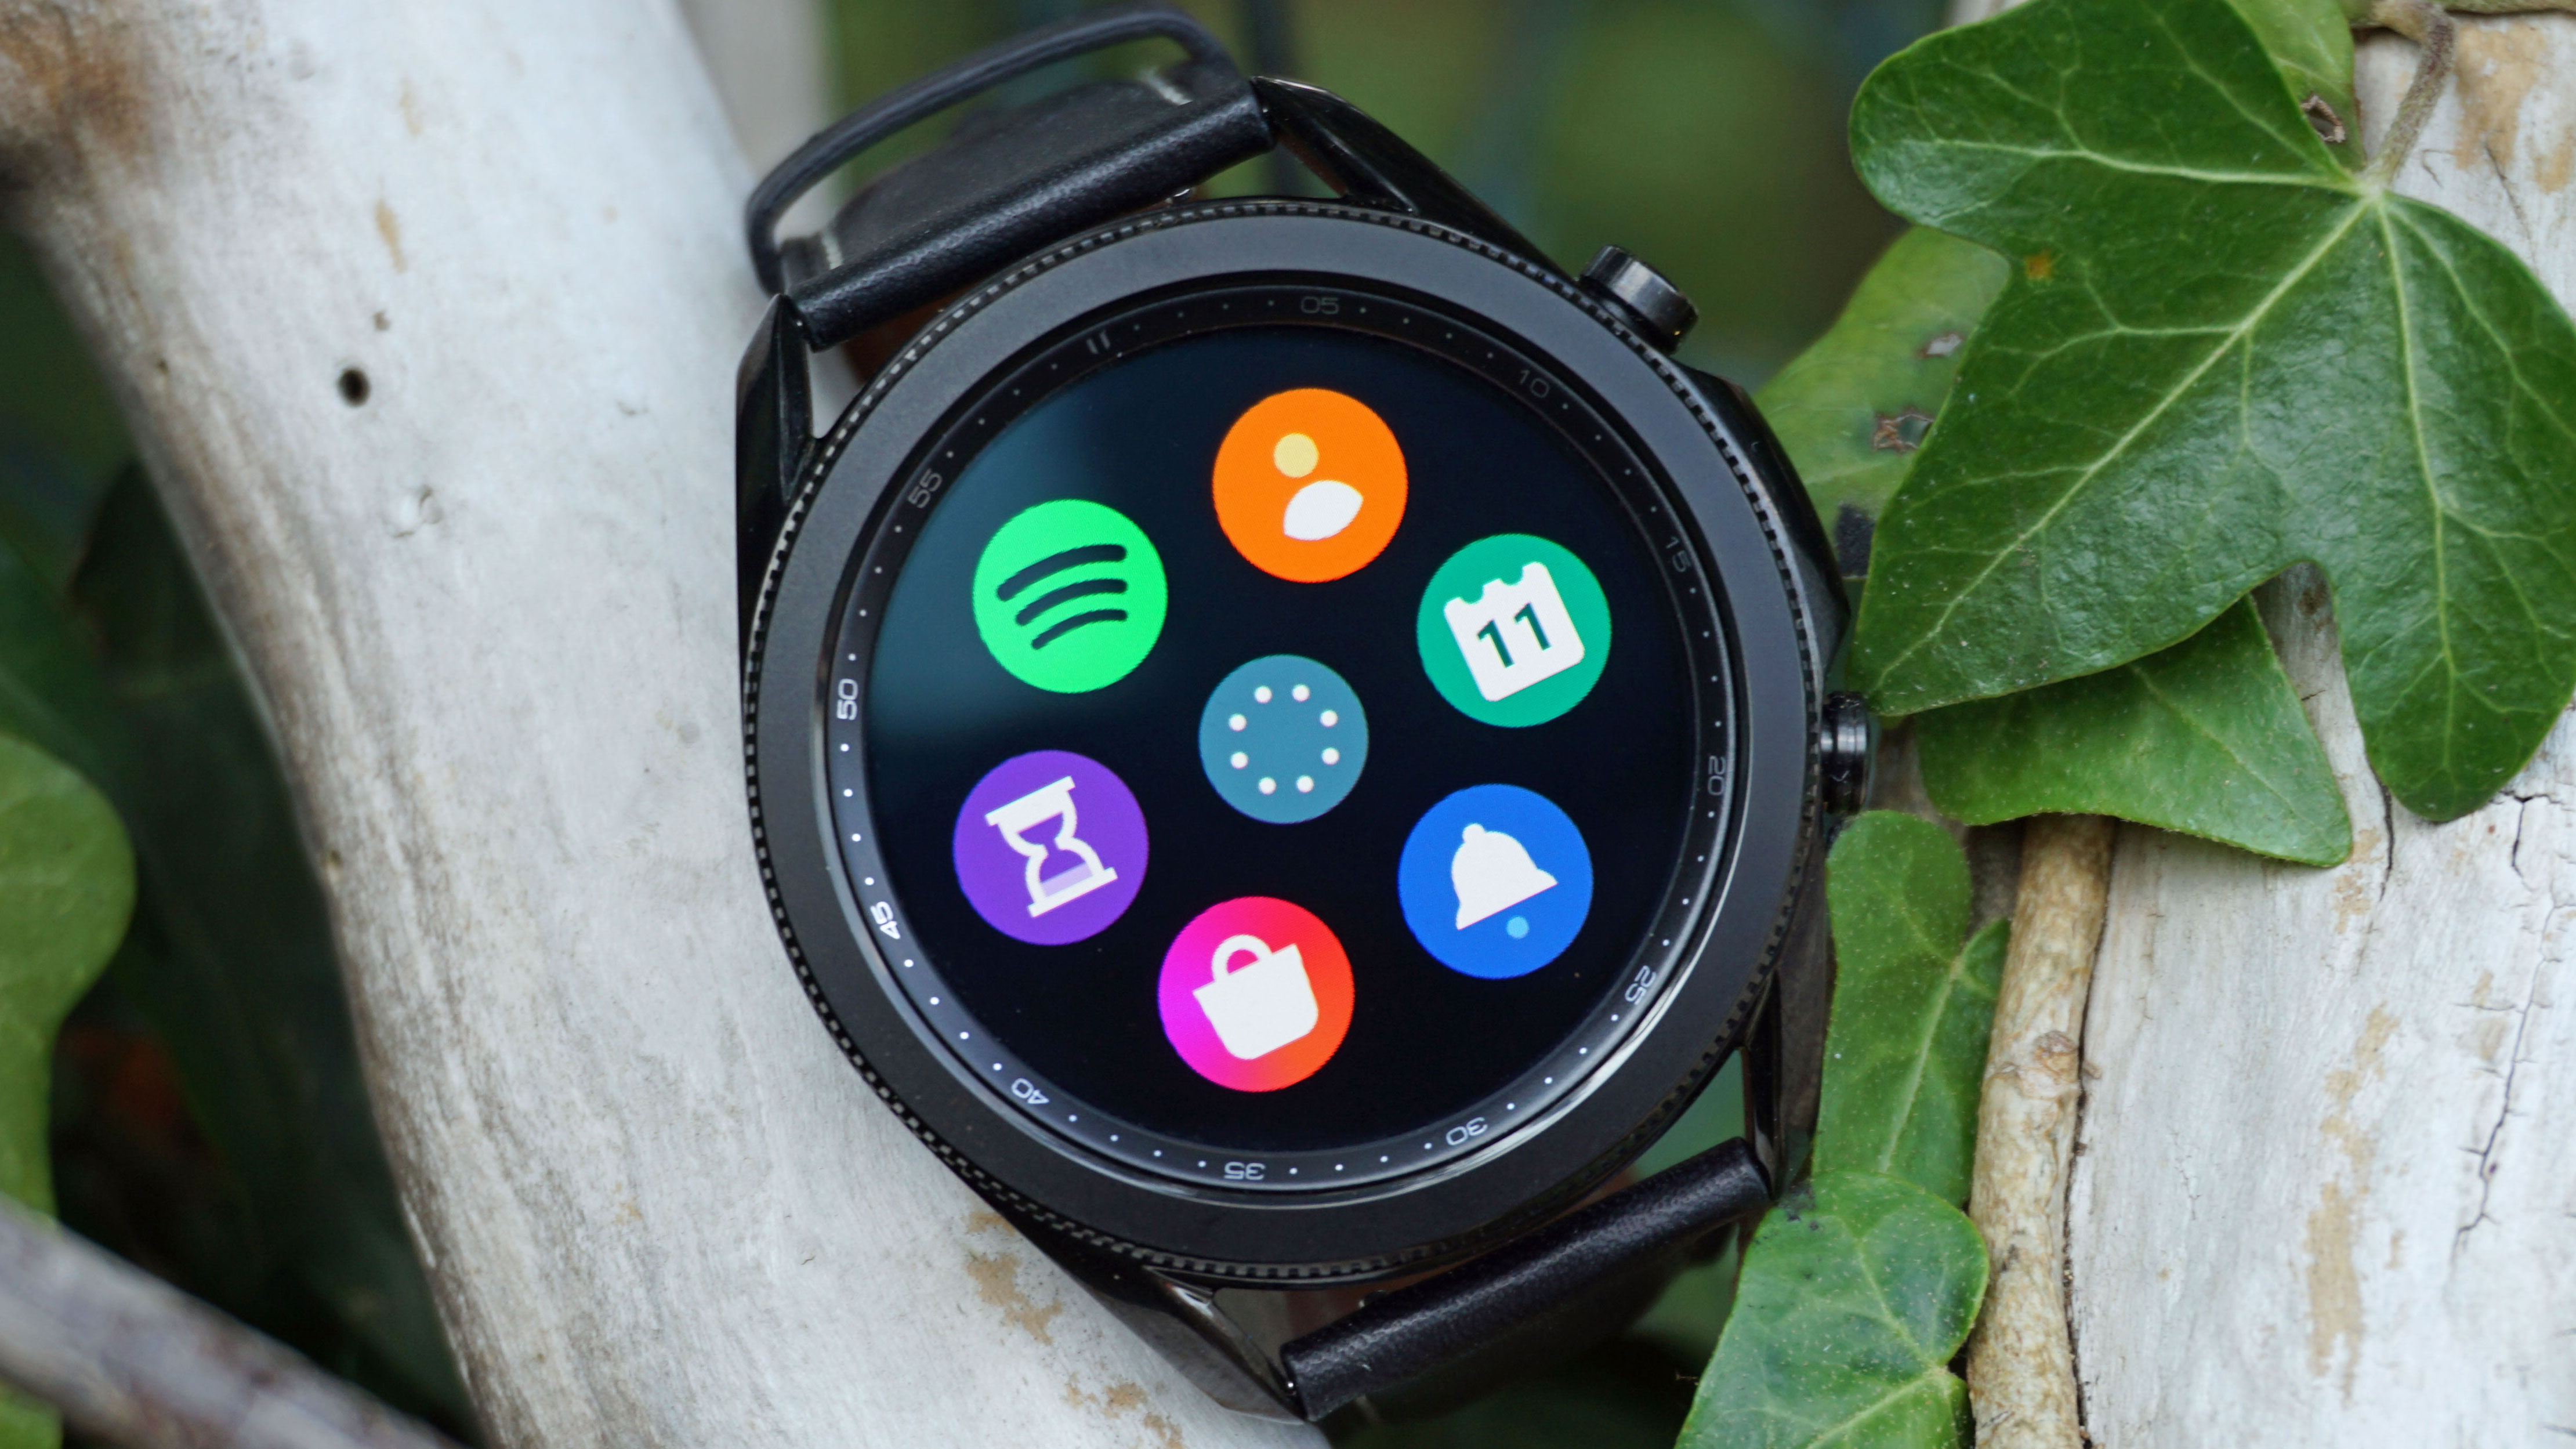 Samsung Galaxy Watch 3 review: refined, premium and easy to use | TechRadar